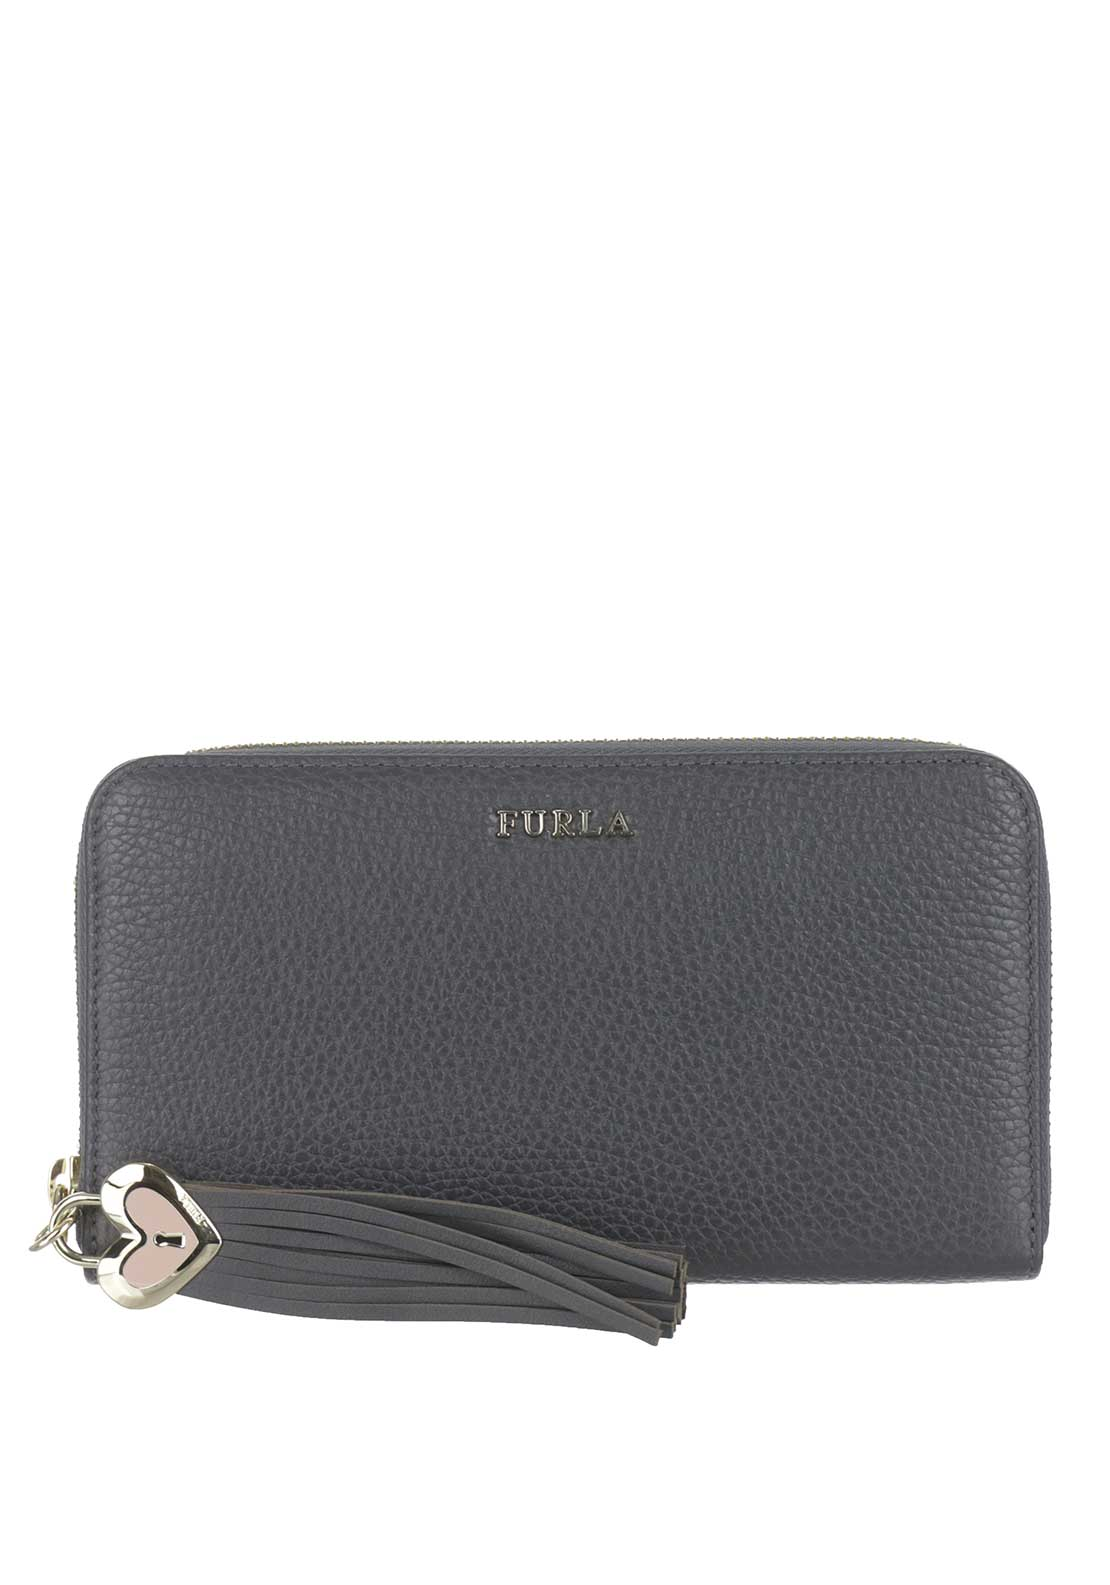 Furla Cuore Leather Zip Around Purse, Grey